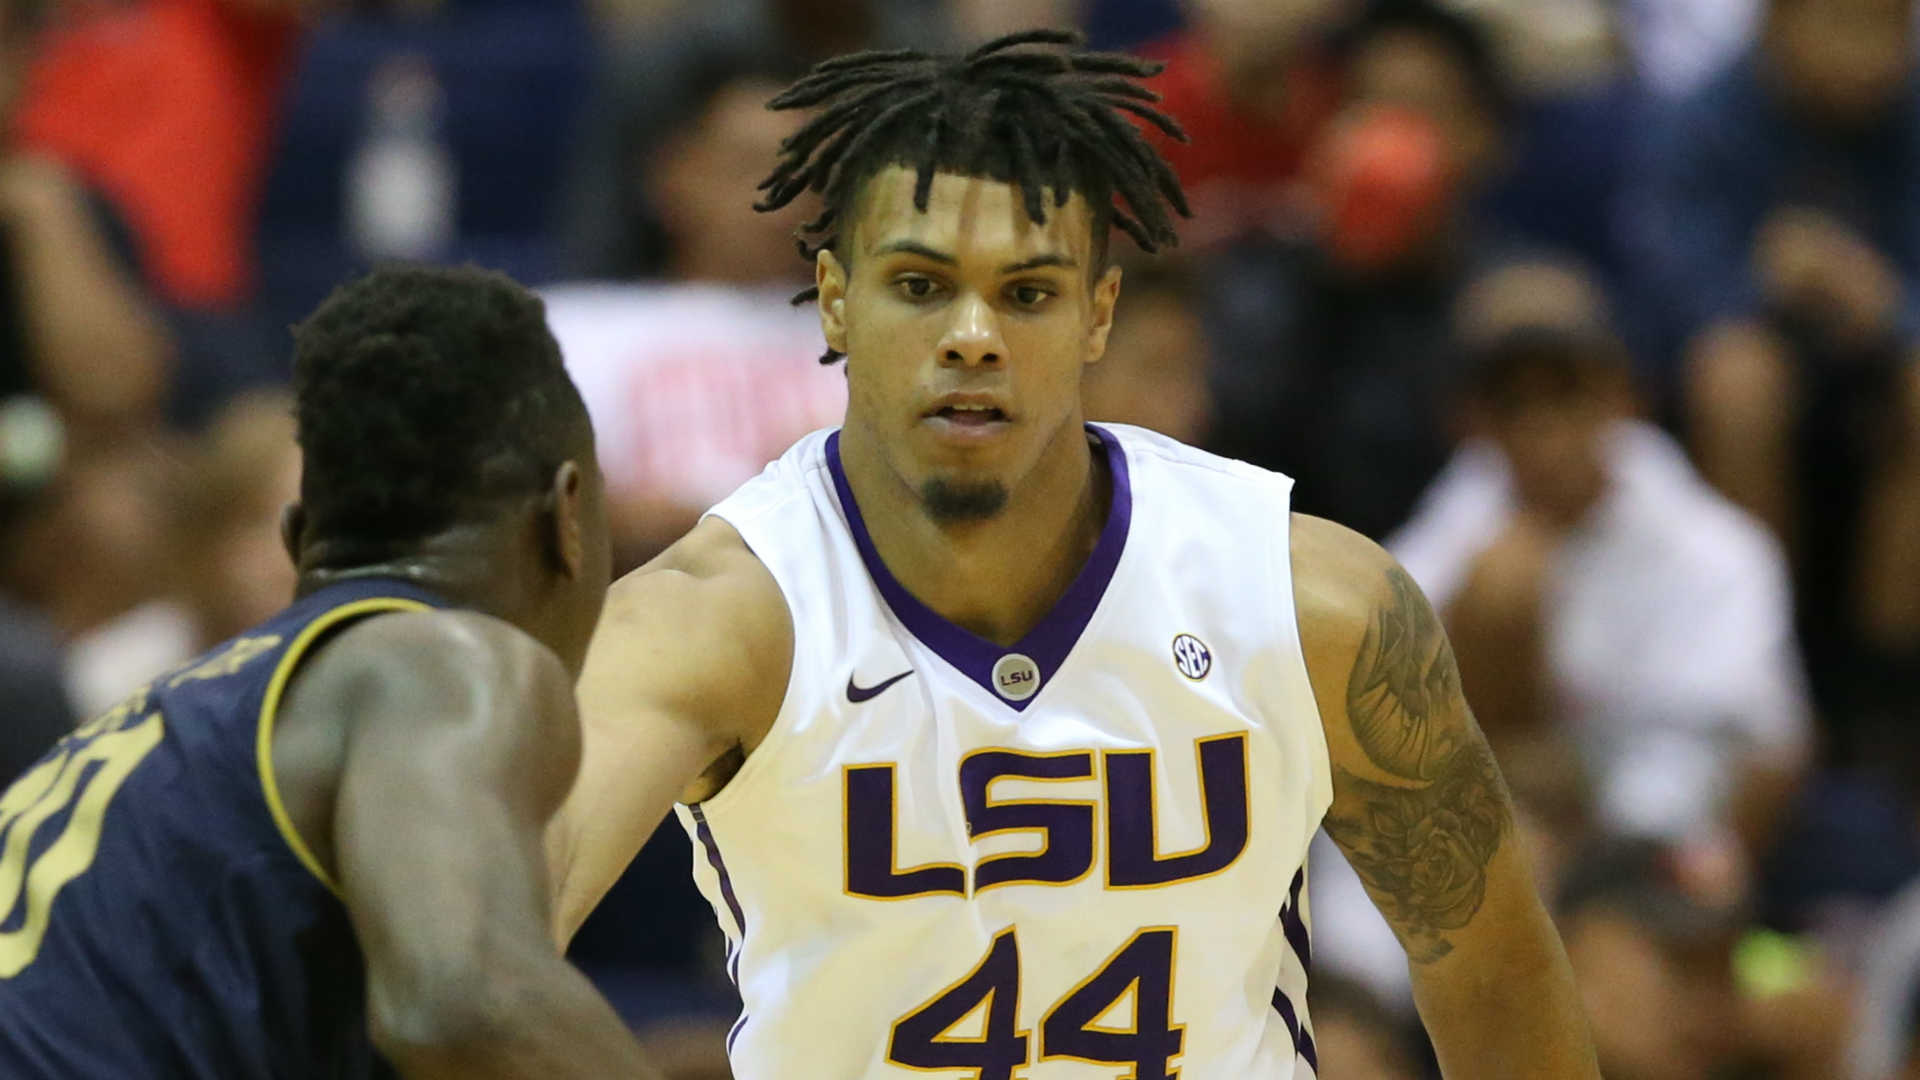 LSU men's basketball player Wayde Sims killed in shooting